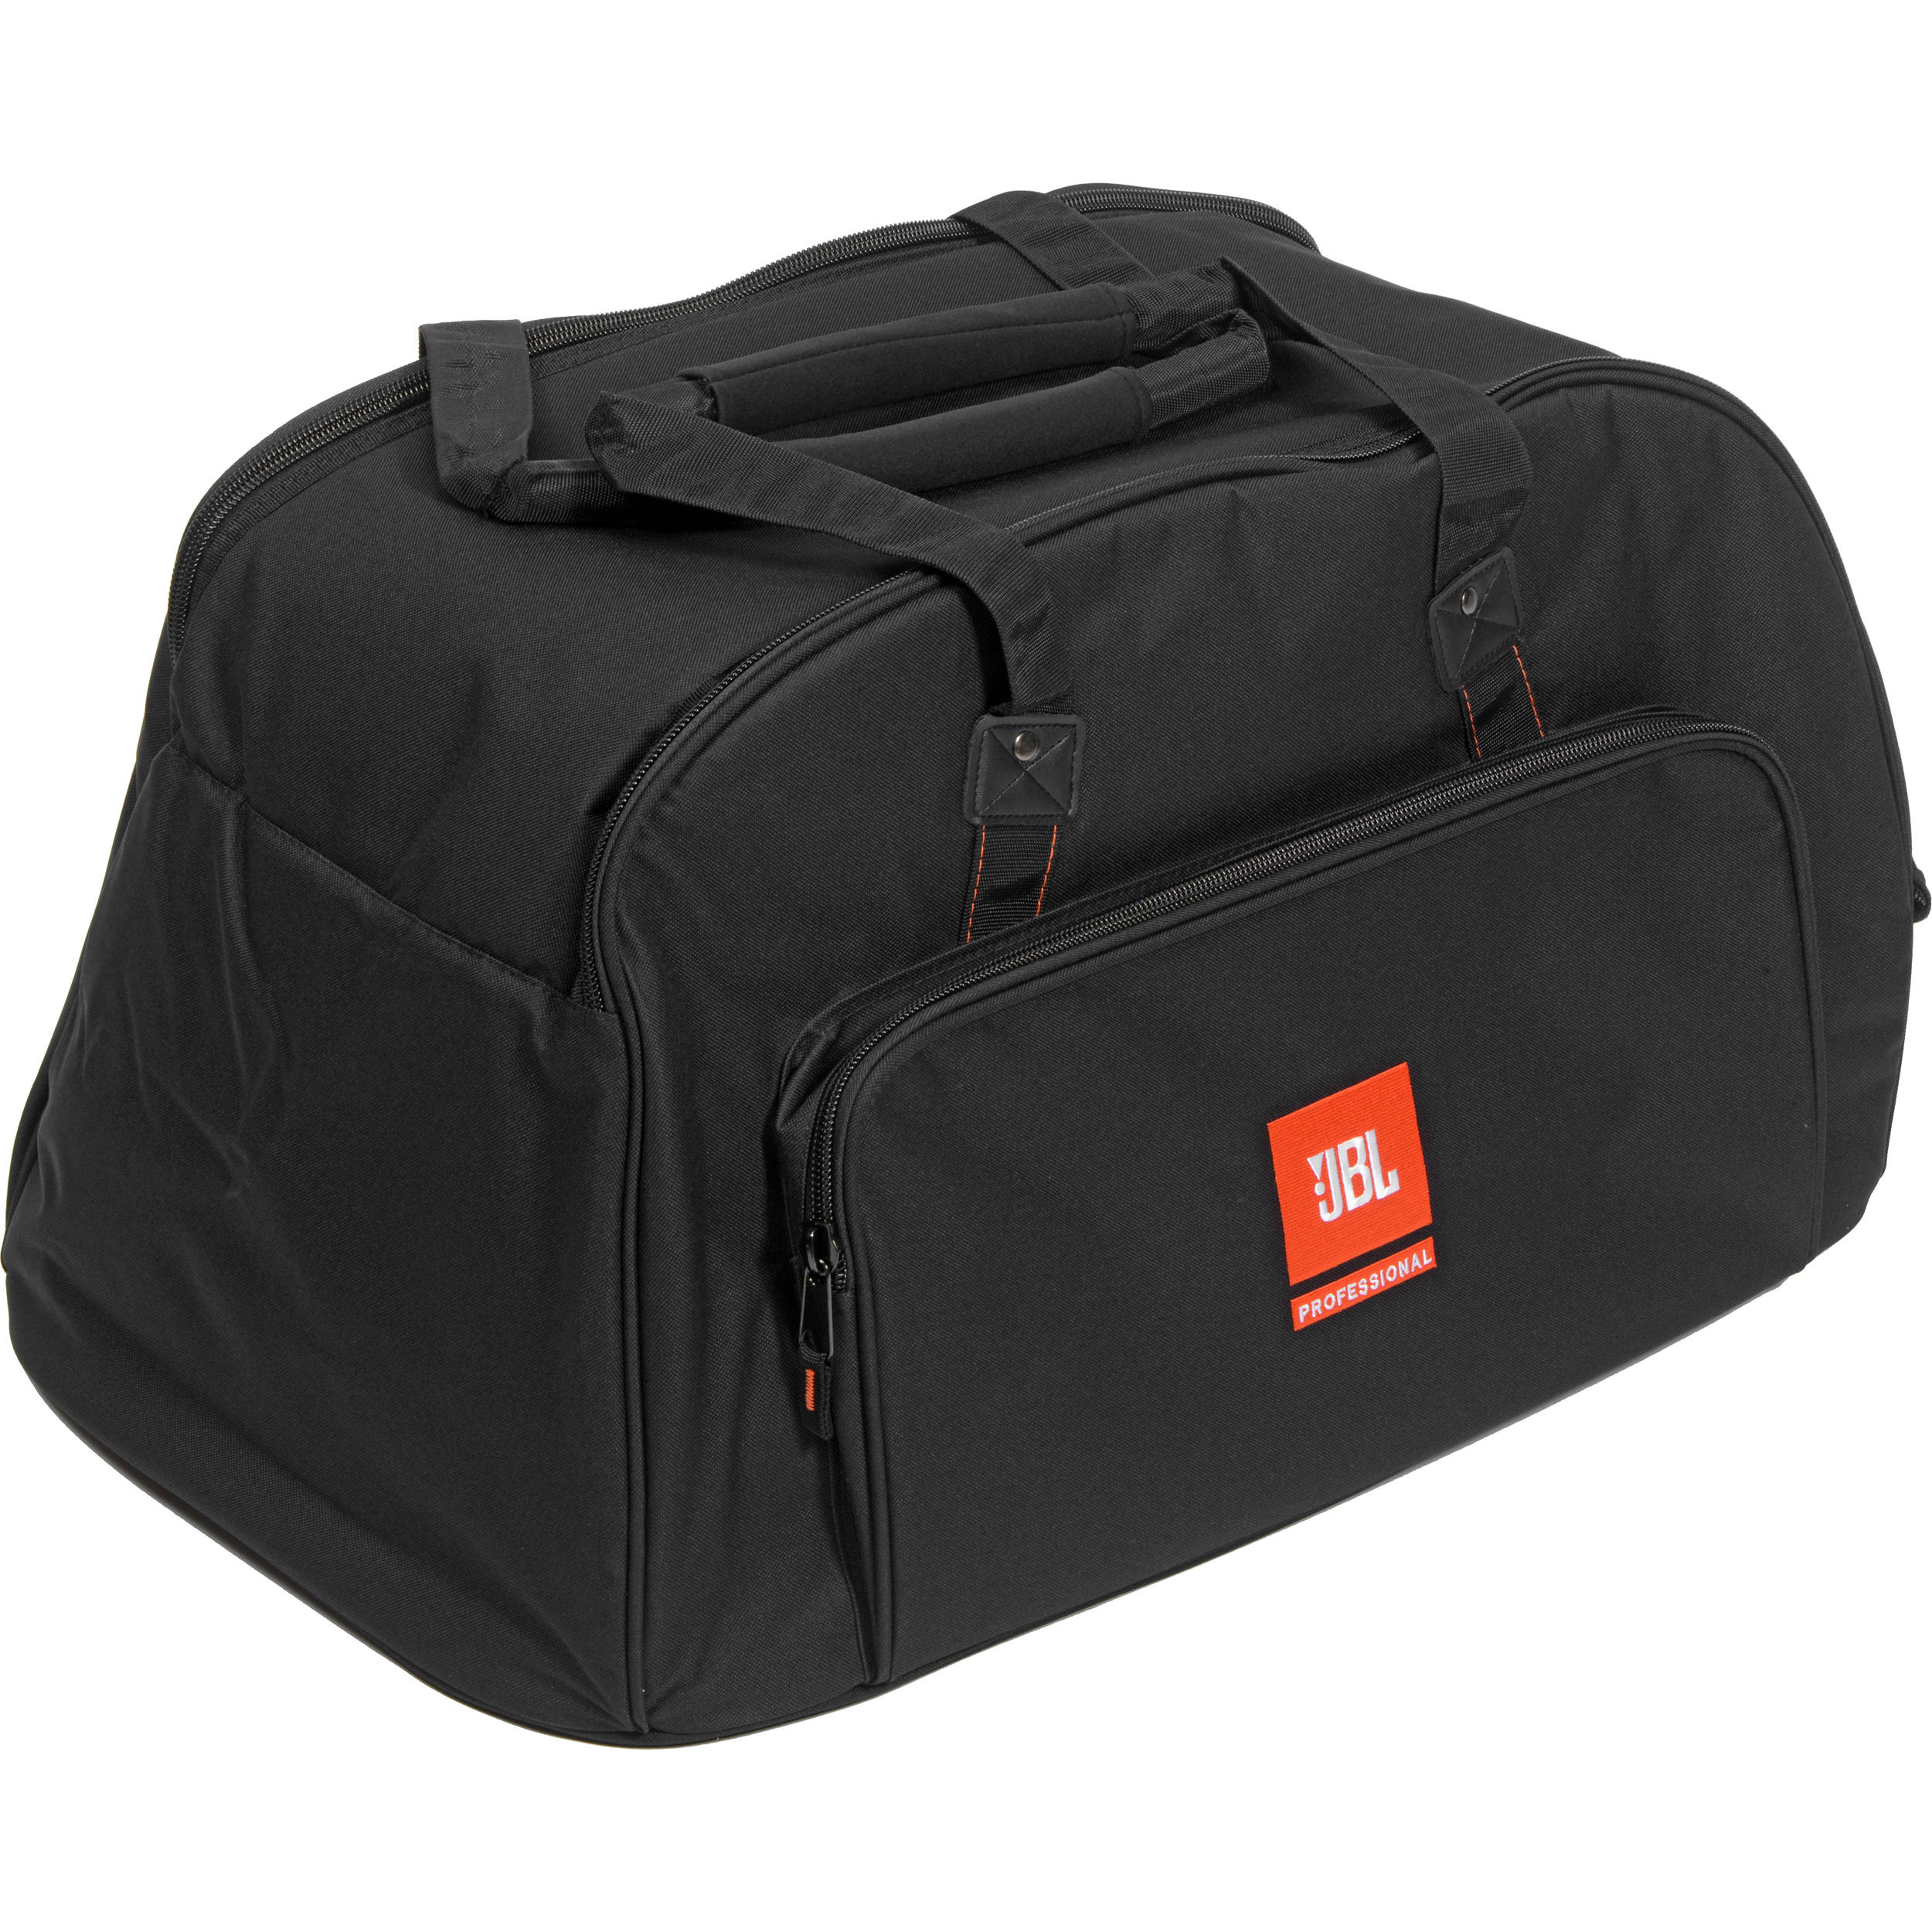 JBL BAGS Deluxe Speaker Carry Bag EON15-BAG-DLX B&H Photo Video